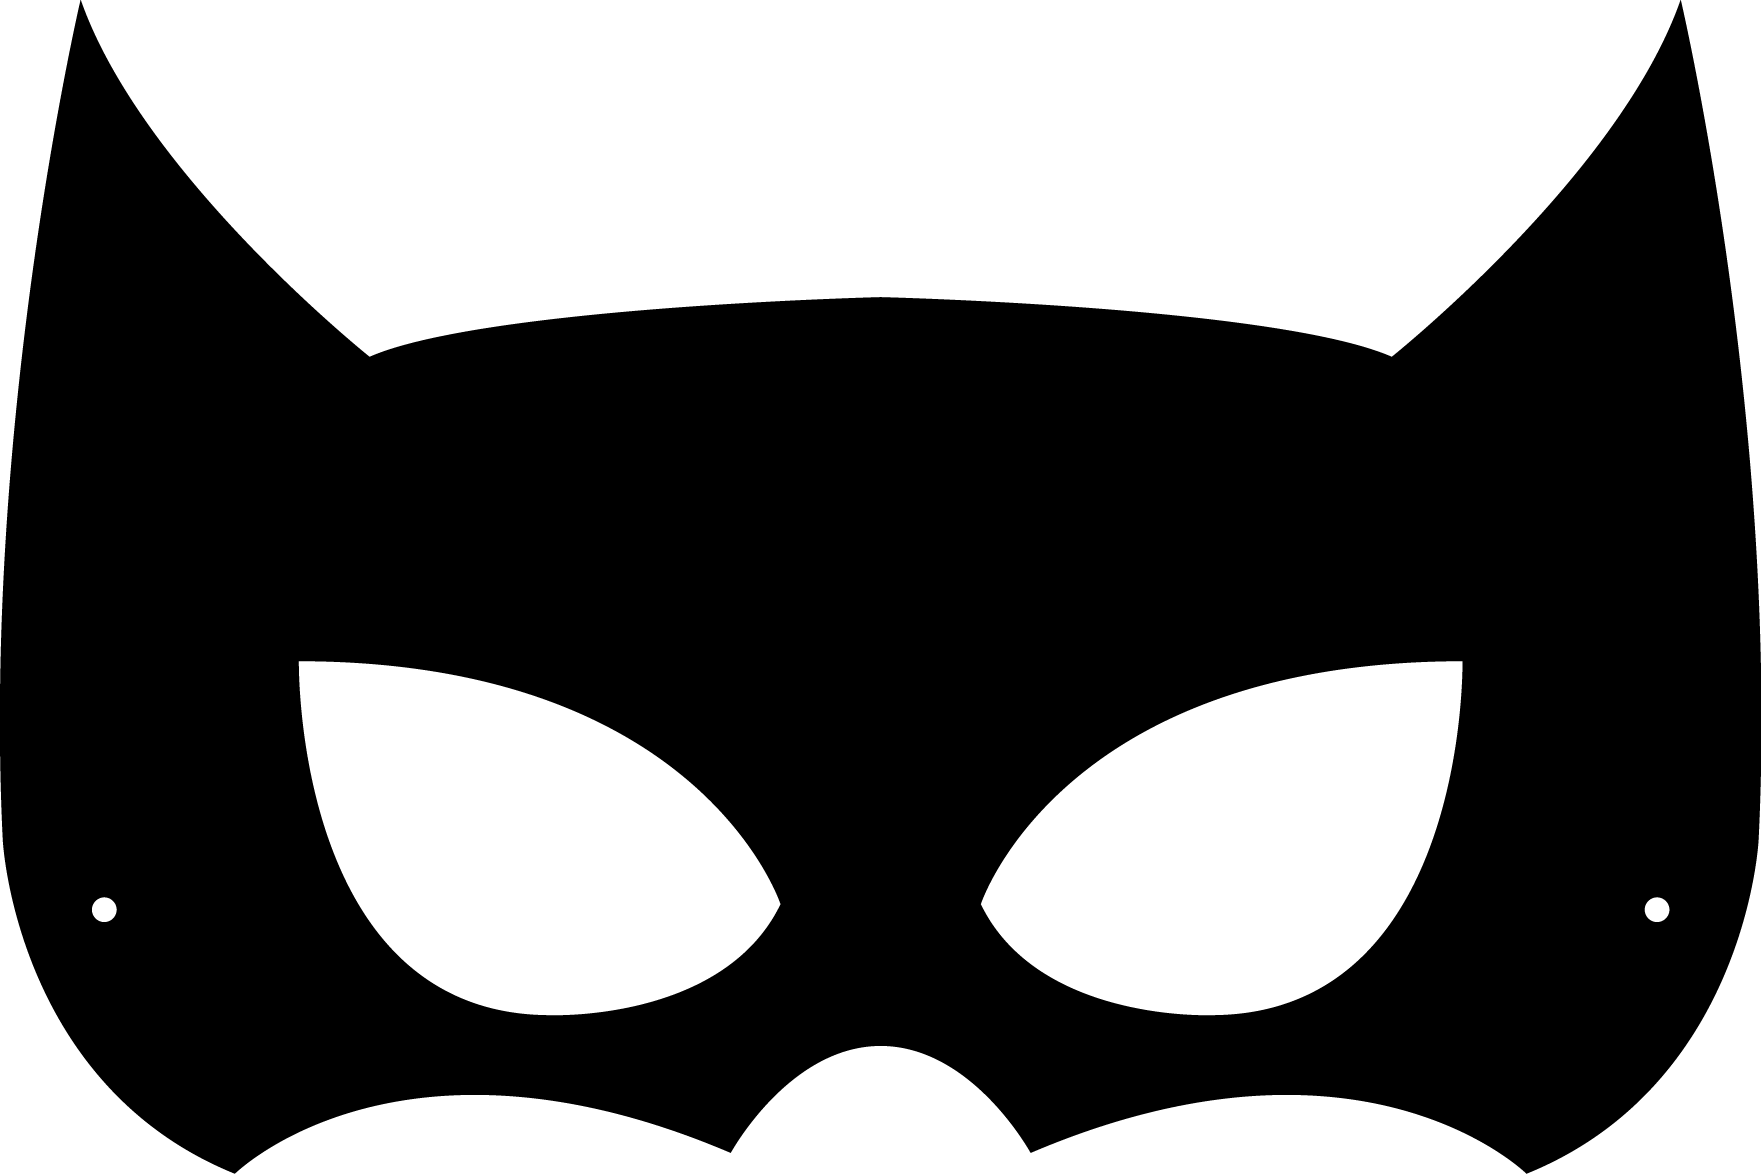 Download For Free Batman Mask Png In High Resolution